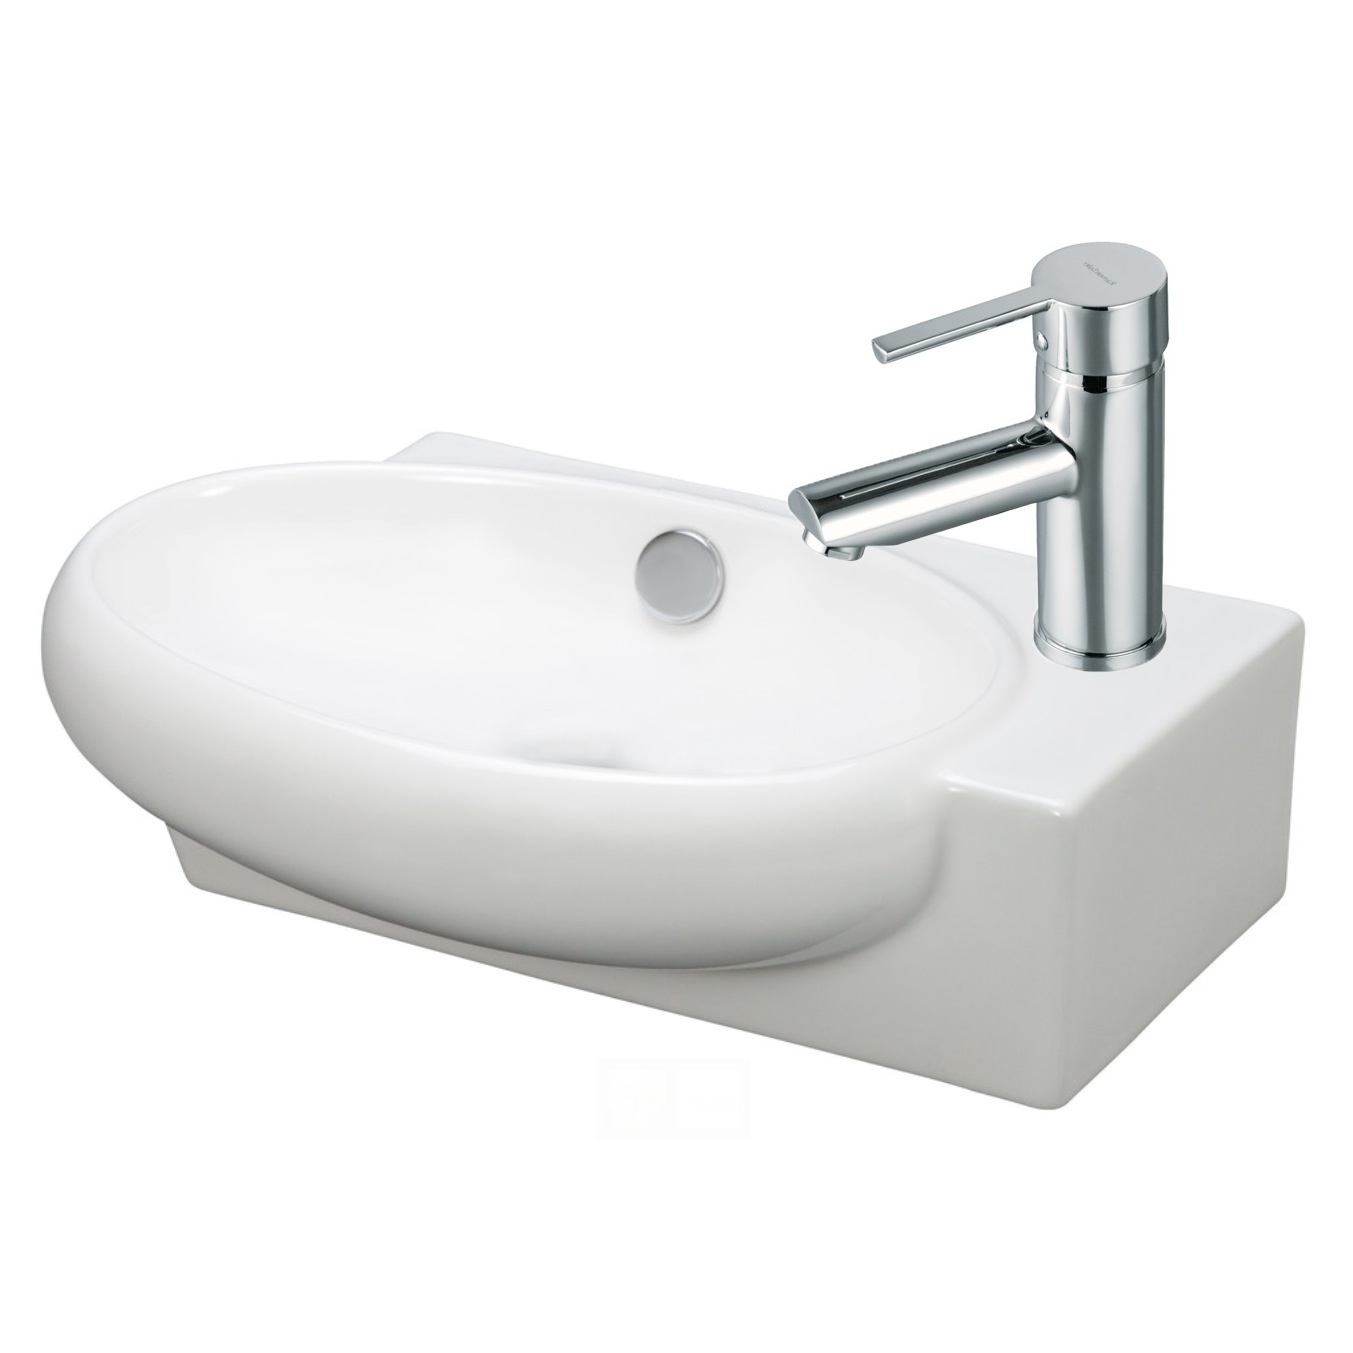 Bathroom Sink Toilet Combo : ... FAU504, Contemporary Ceramic Bathroom Sink and Faucet Combo FAU504